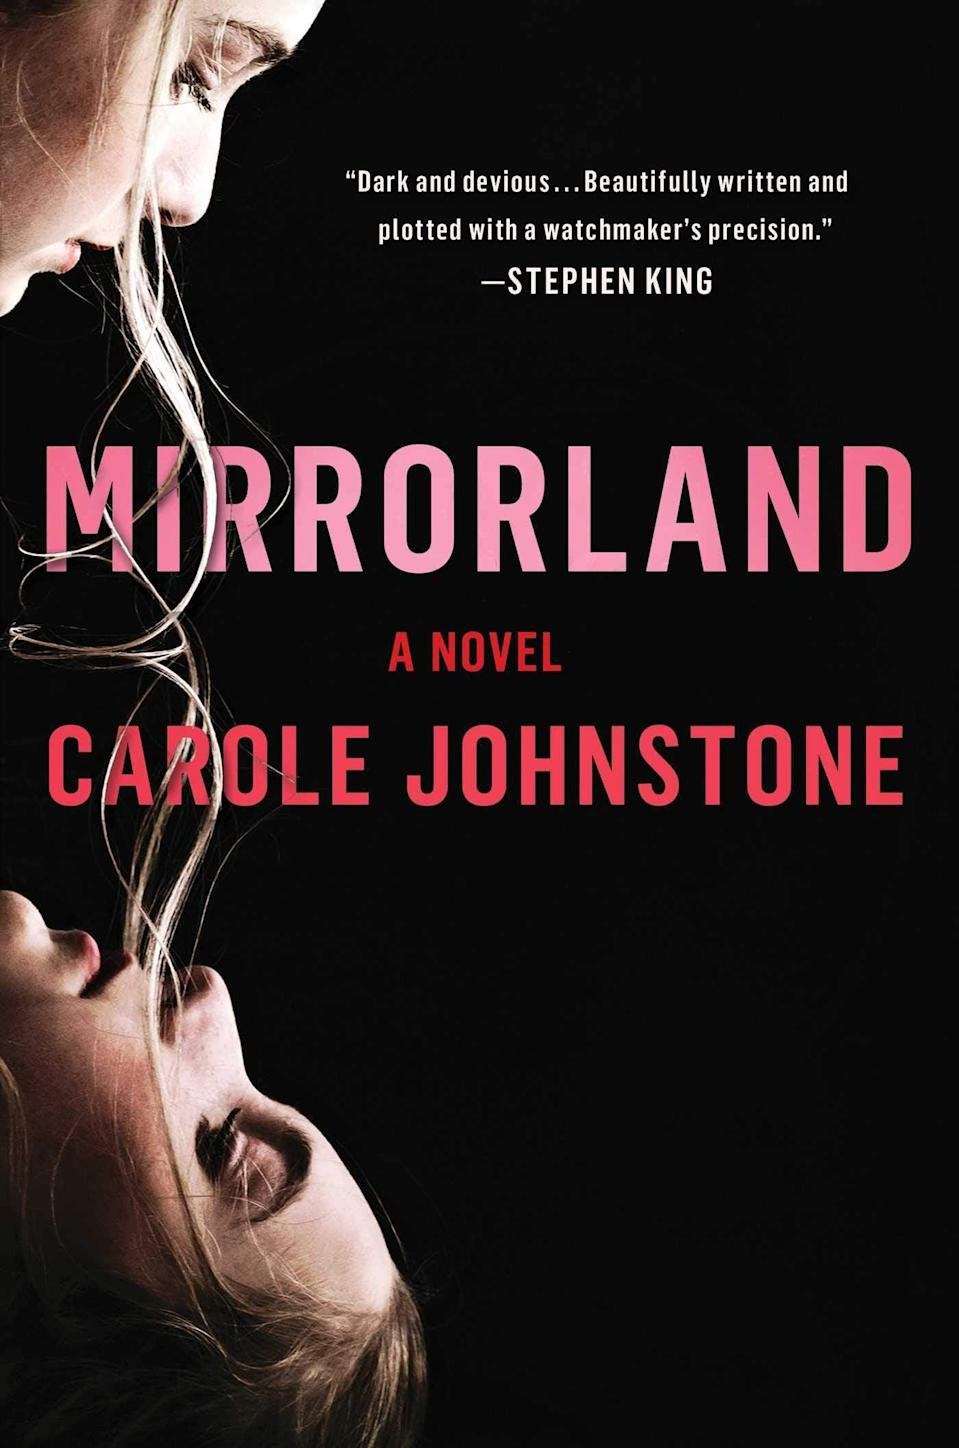 "<p>There's an undeniable gothic flair to Carole Johnstone's <a href=""https://www.amazon.com/Mirrorland-Carole-Johnstone/dp/1982136359"" class=""link rapid-noclick-resp"" rel=""nofollow noopener"" target=""_blank"" data-ylk=""slk:Mirrorland""><strong>Mirrorland</strong></a>. The story follows twin sisters El and Cat who grew up in a rambling, old house where they invented a dark underworld that existed in the cupboard under the stairs. As an adult, El rarely thinks about her estranged sister or their childhood invention, but when Cat goes missing, El finds a series of clues leading her straight to Mirrorland and a dark truth. </p> <p><em>Out April 20</em></p>"